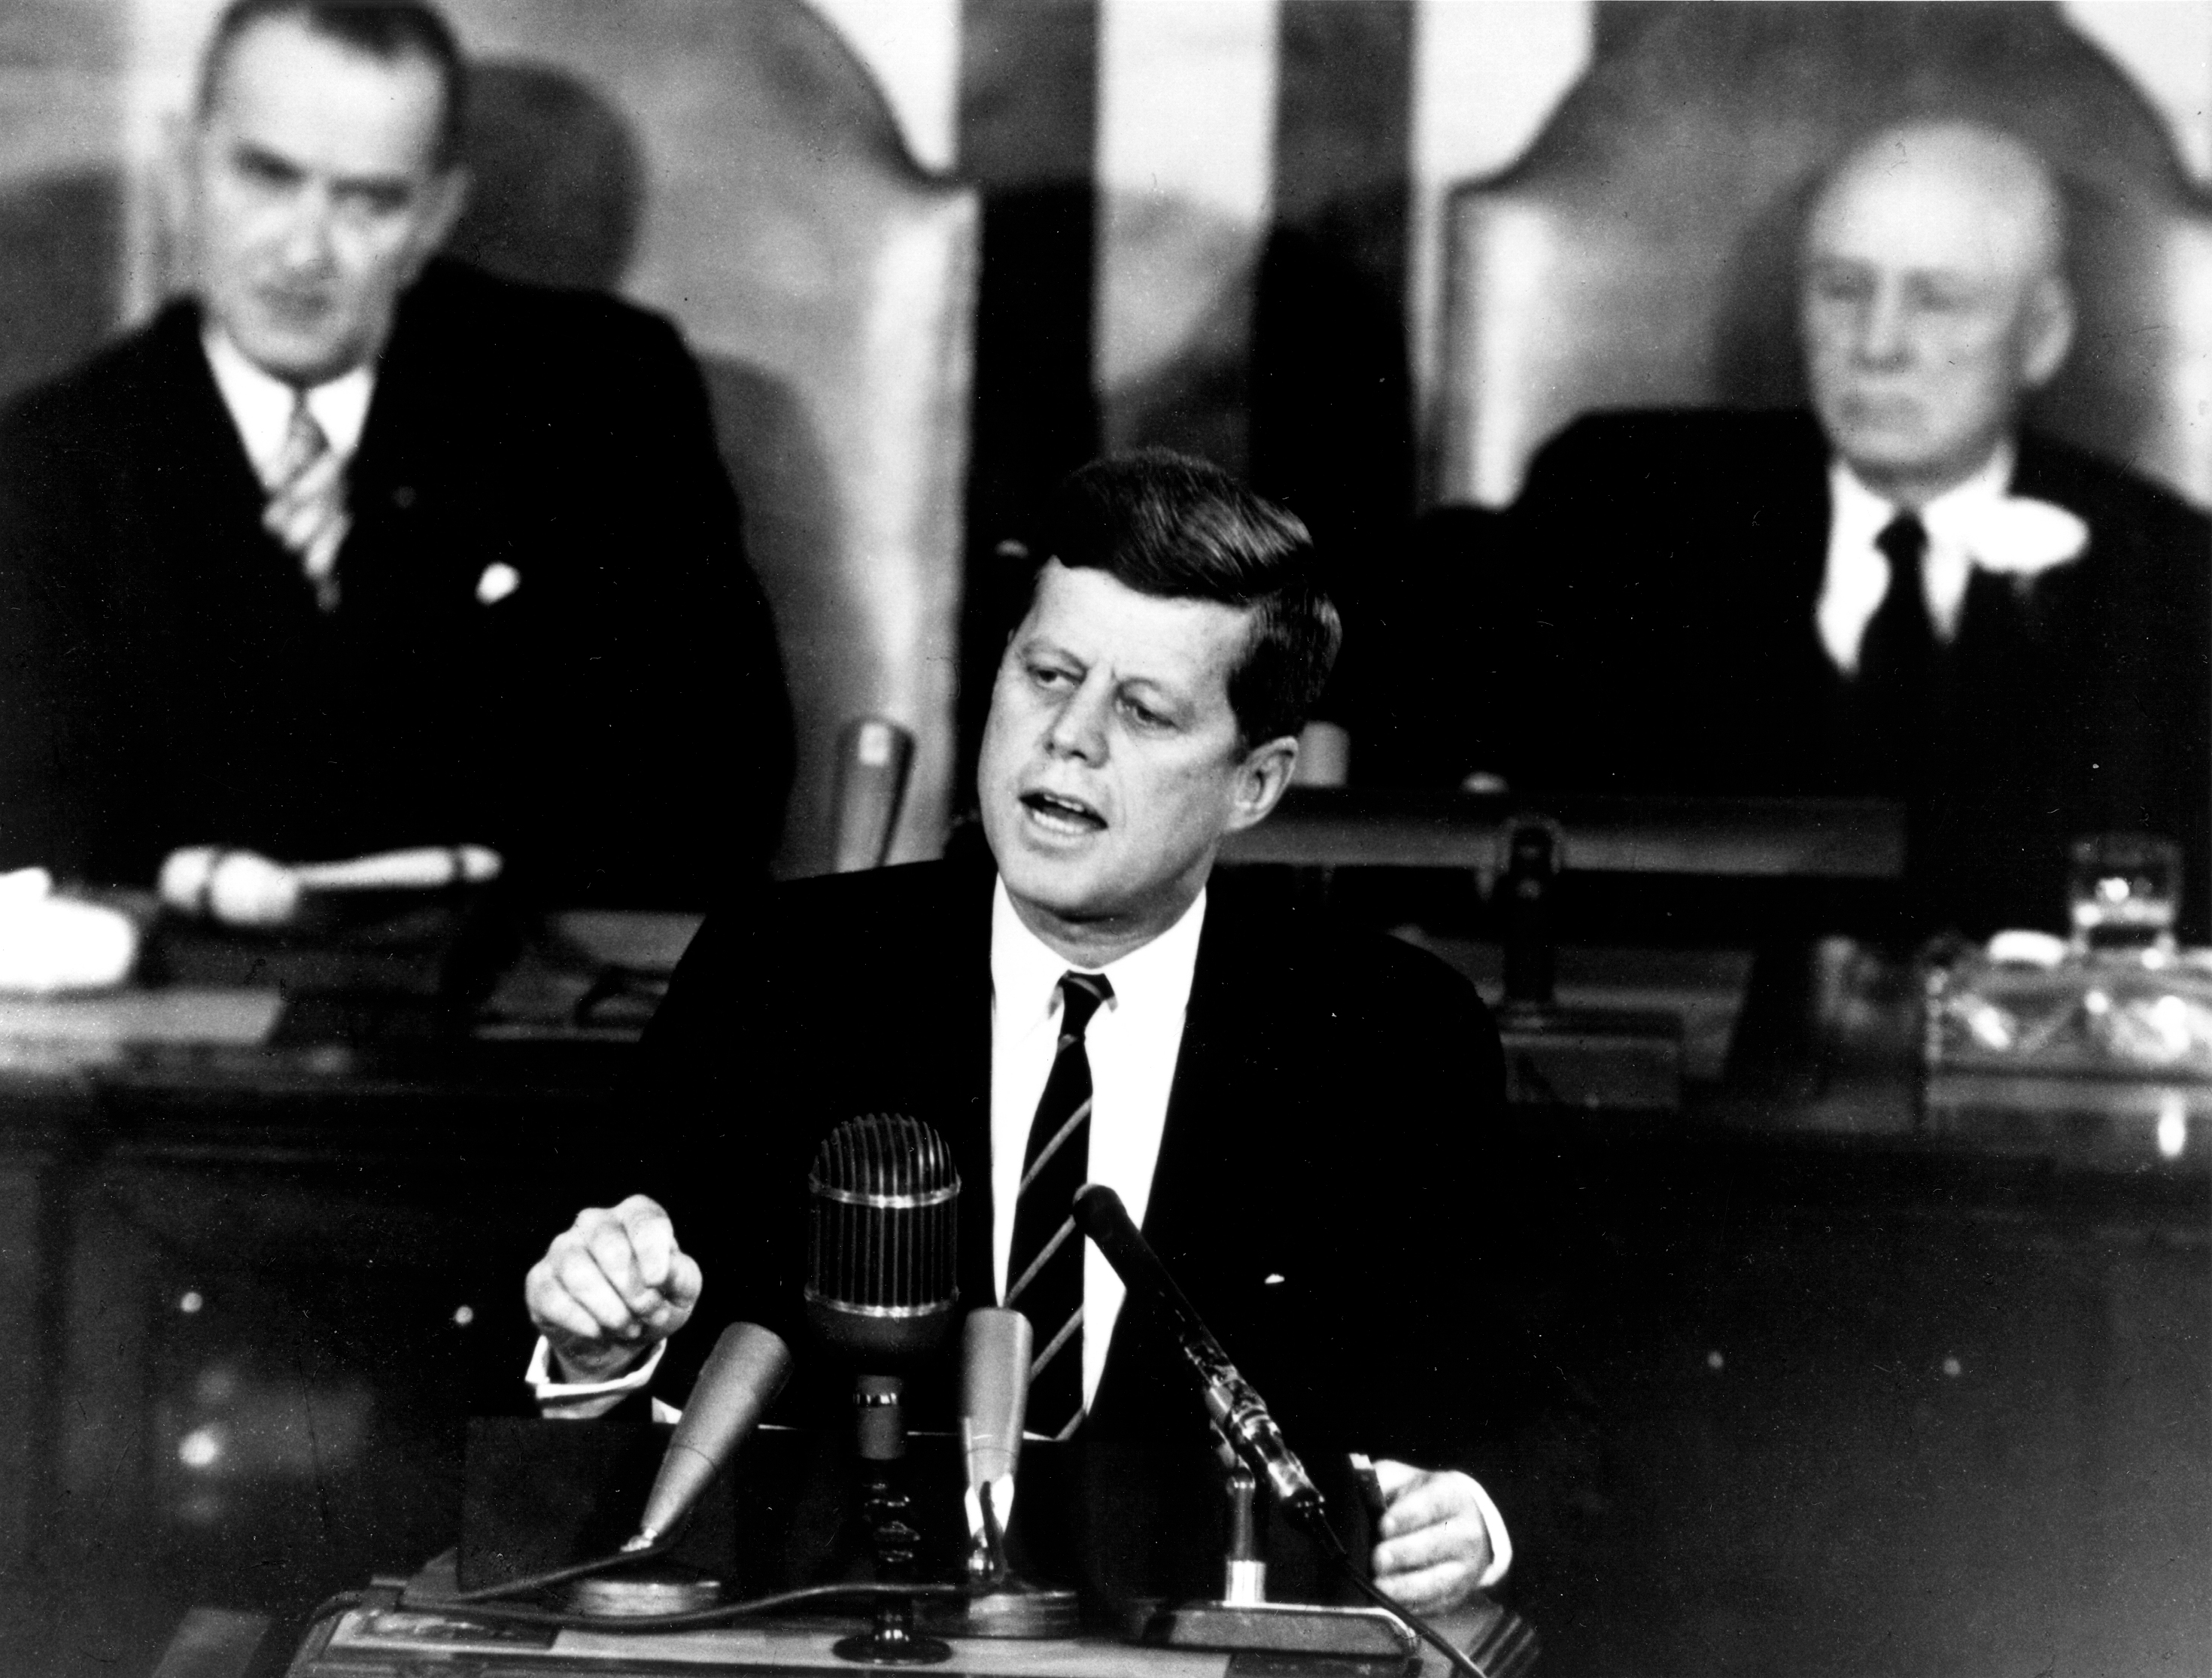 U.S. President John F. Kennedy in his historic message to a joint session of the Congress, on May 25, 1961 declared,